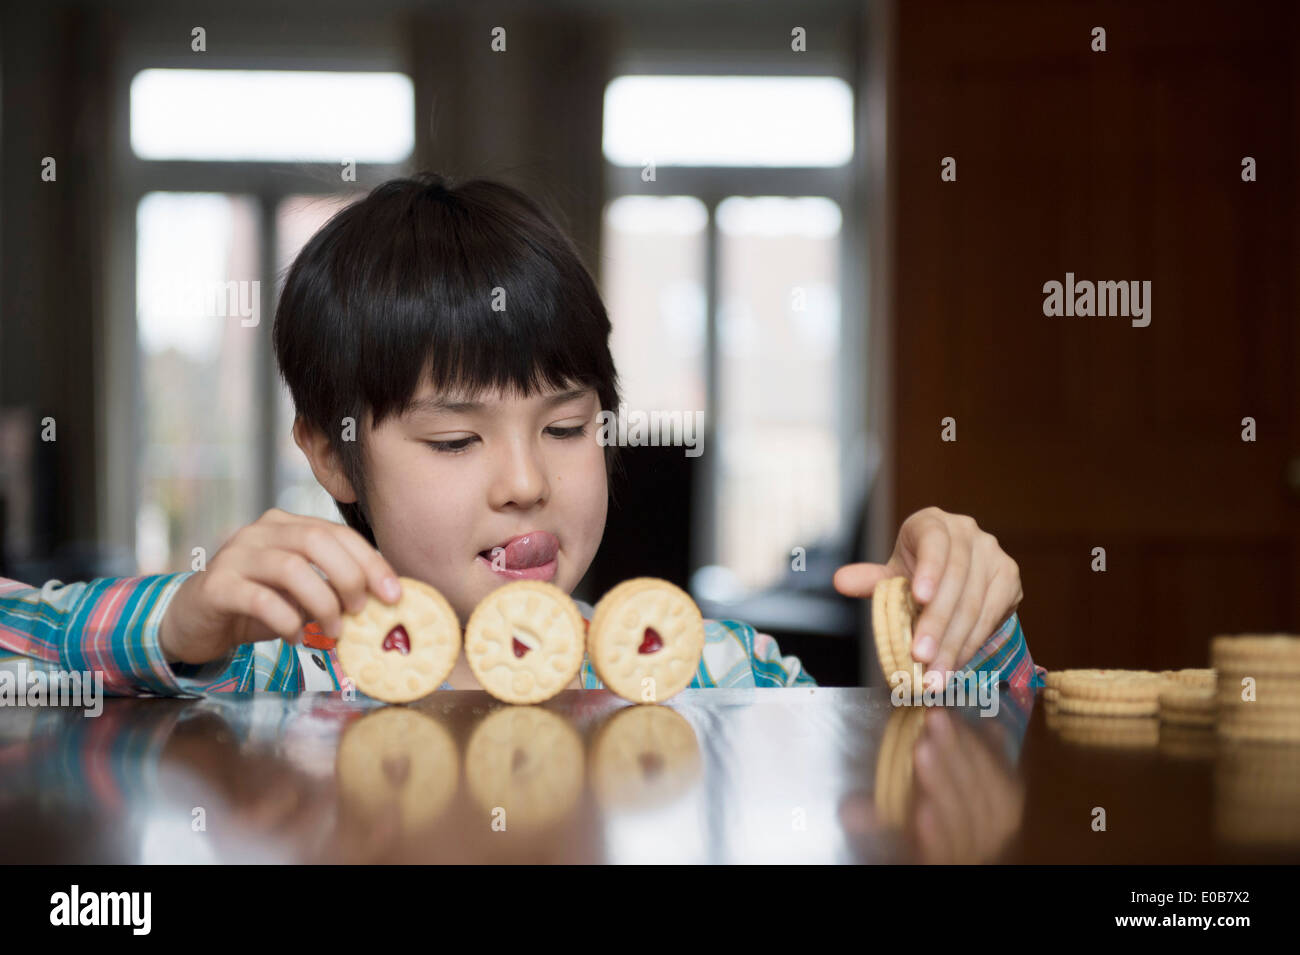 Boy playing with biscuits - Stock Image